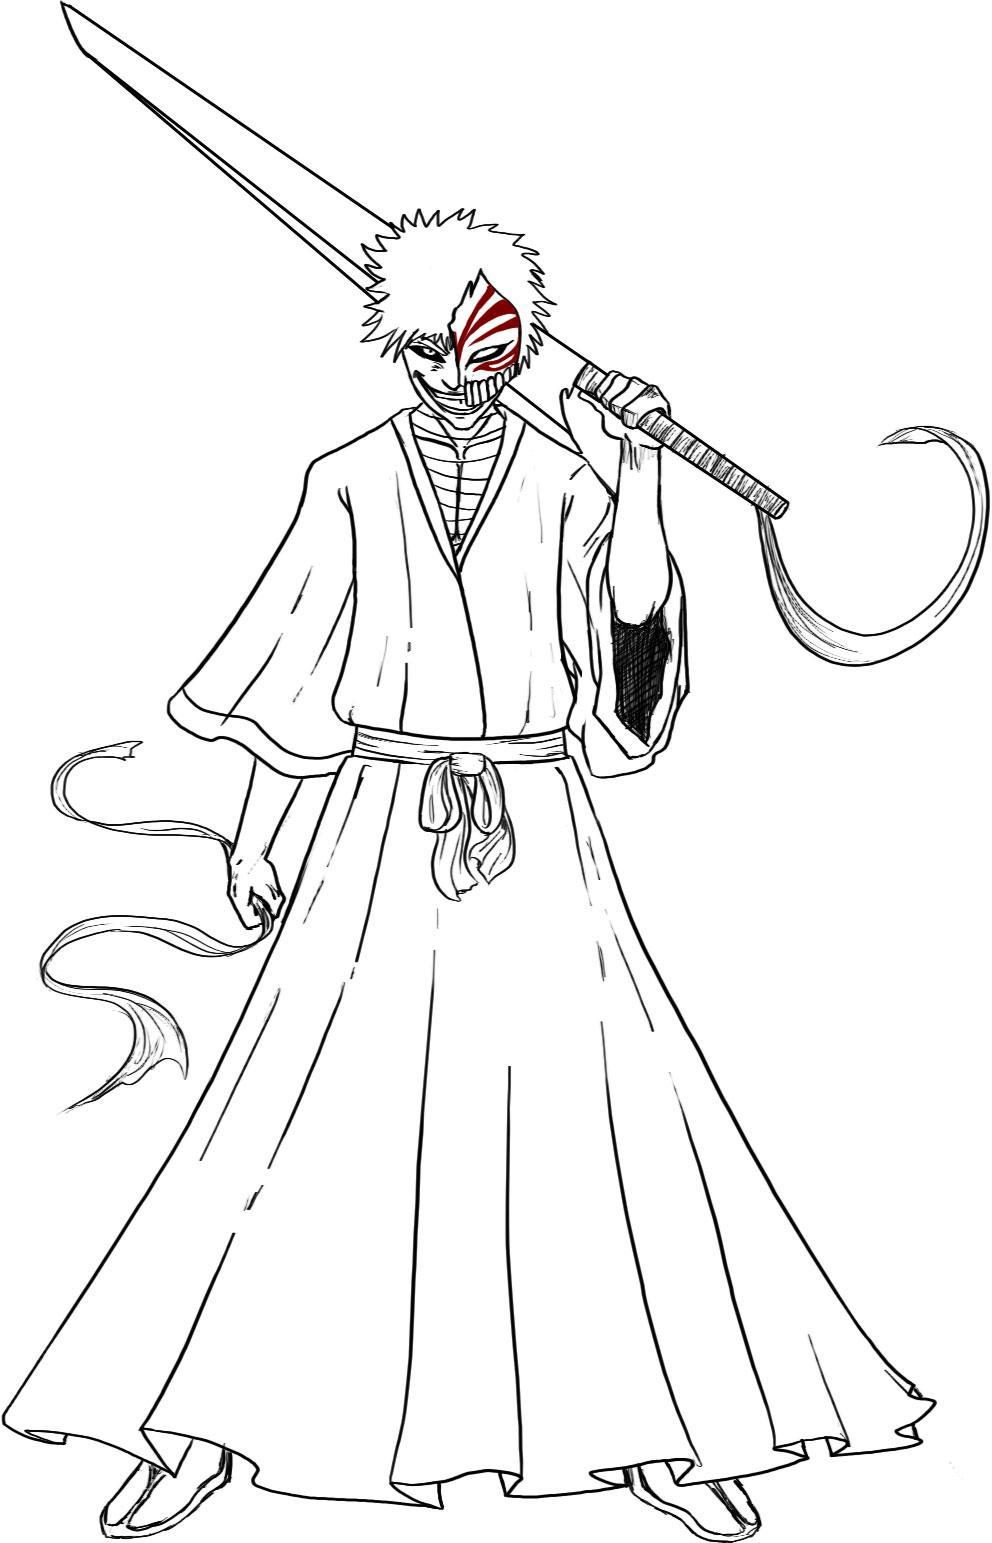 Bleach Free Coloring Print 5